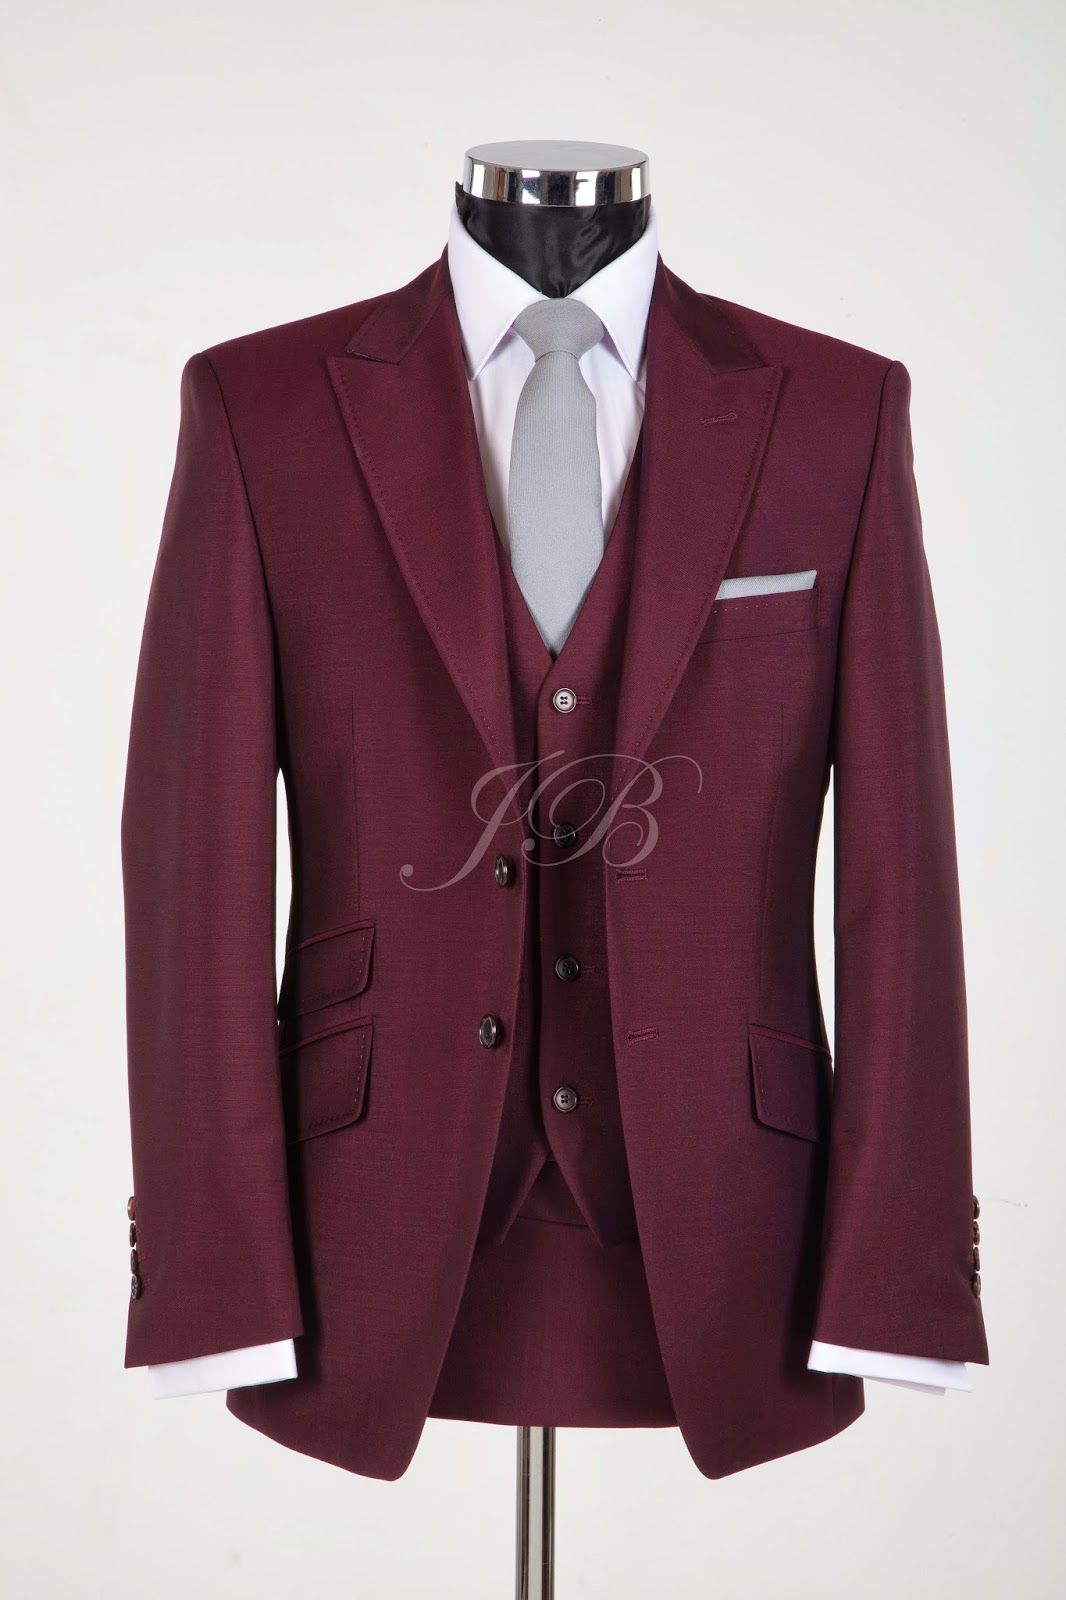 In 2012 we introduced you to a new idea in wedding suit